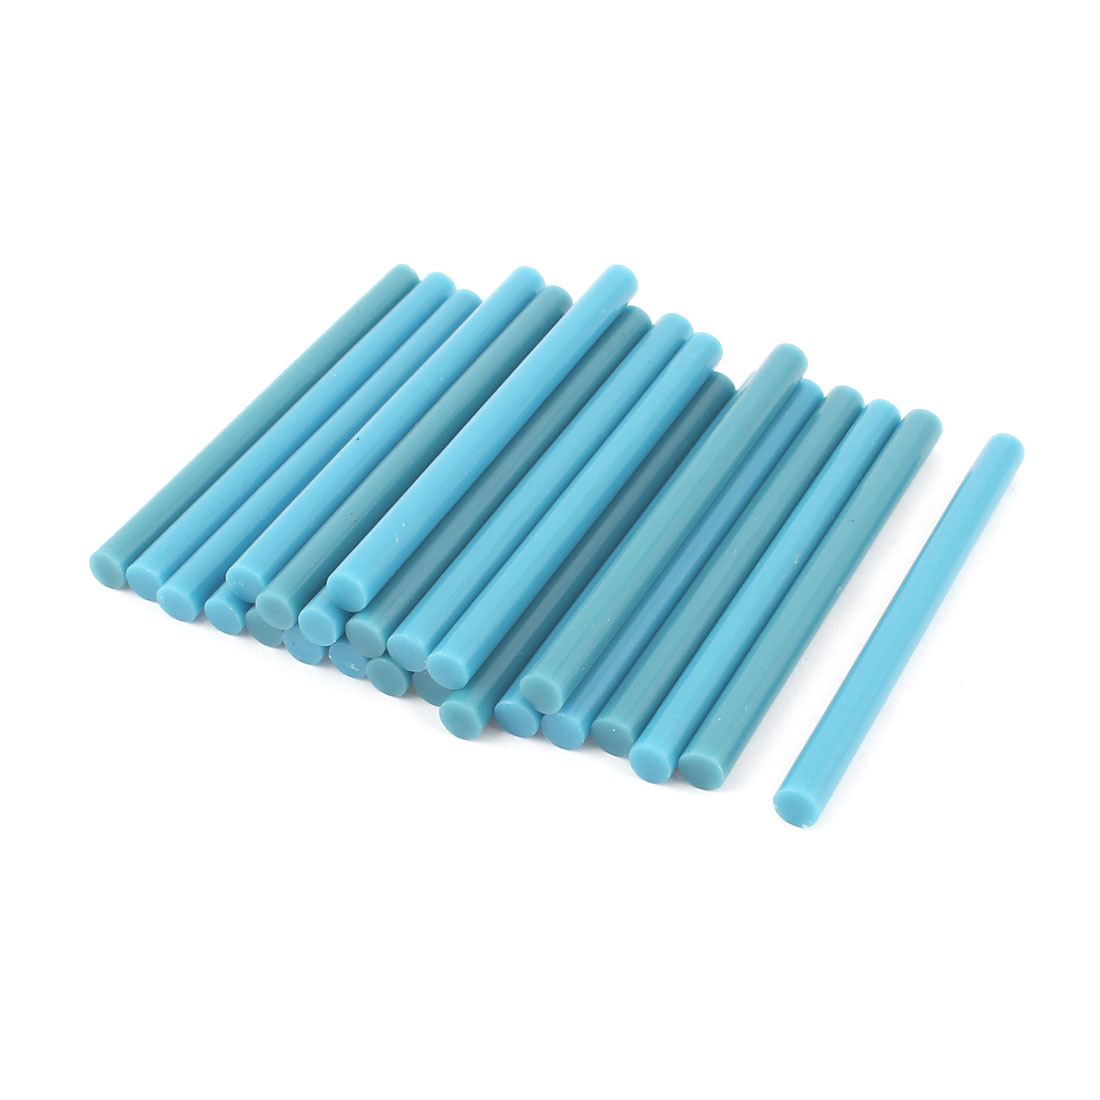 24 Pcs Blue Hot Melt Glue Gun Adhesive Sticks 7mm x 100mm